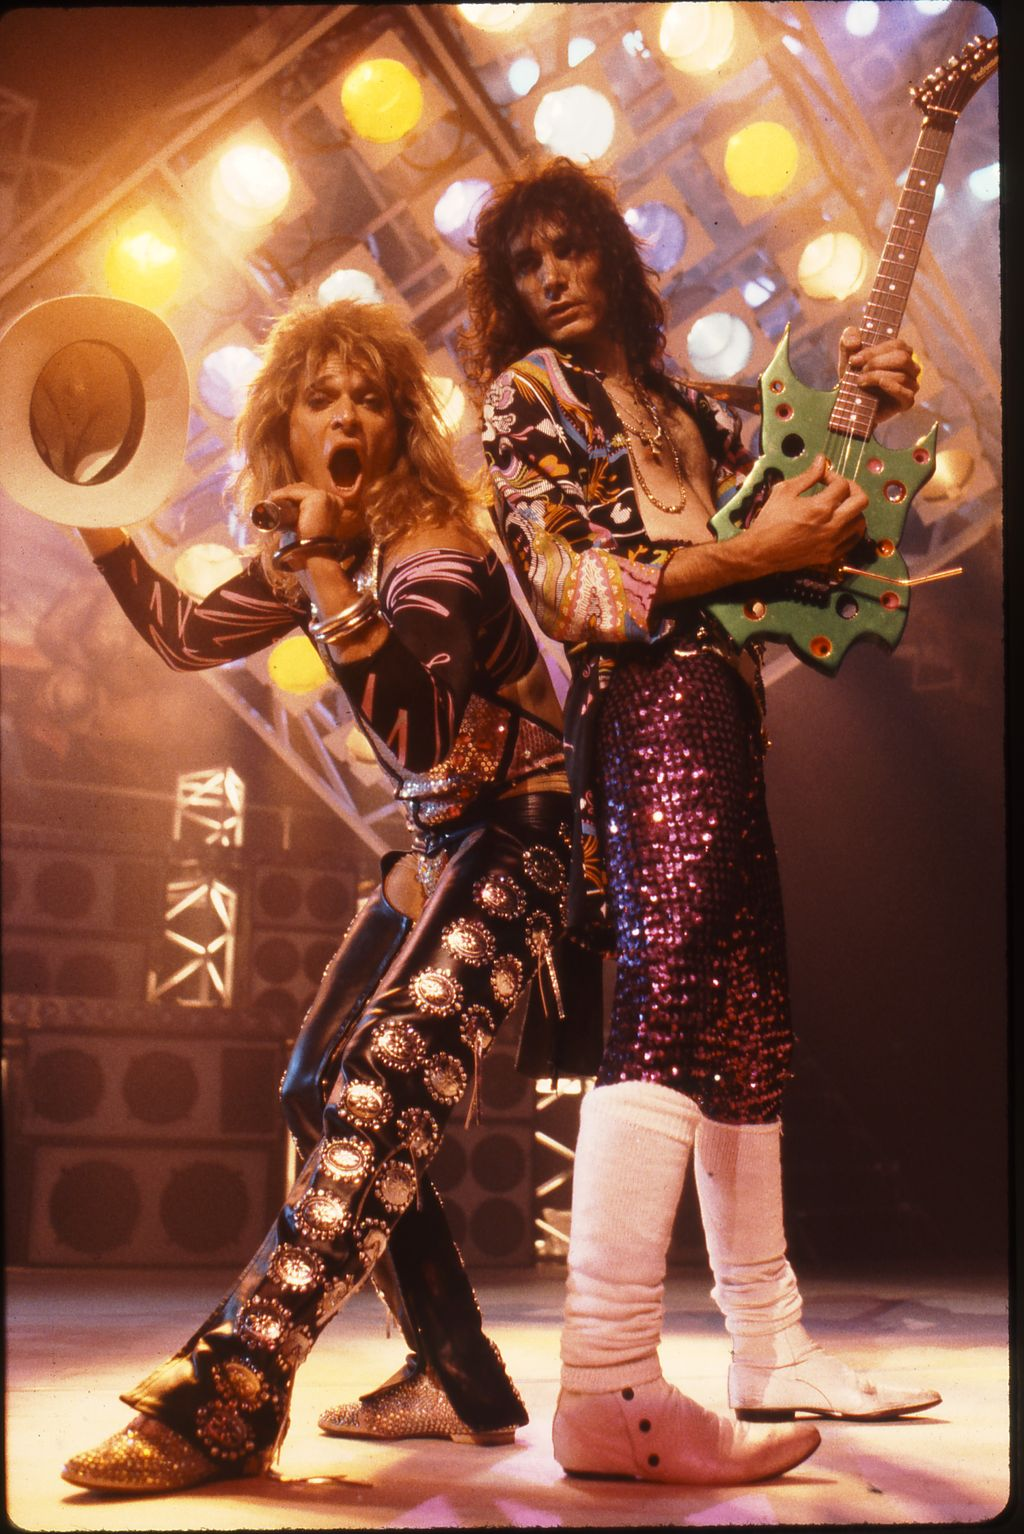 David Lee Roth And Steve Vai Photograph By Neil Zlozower Steve Vai David Lee Roth Glam Metal